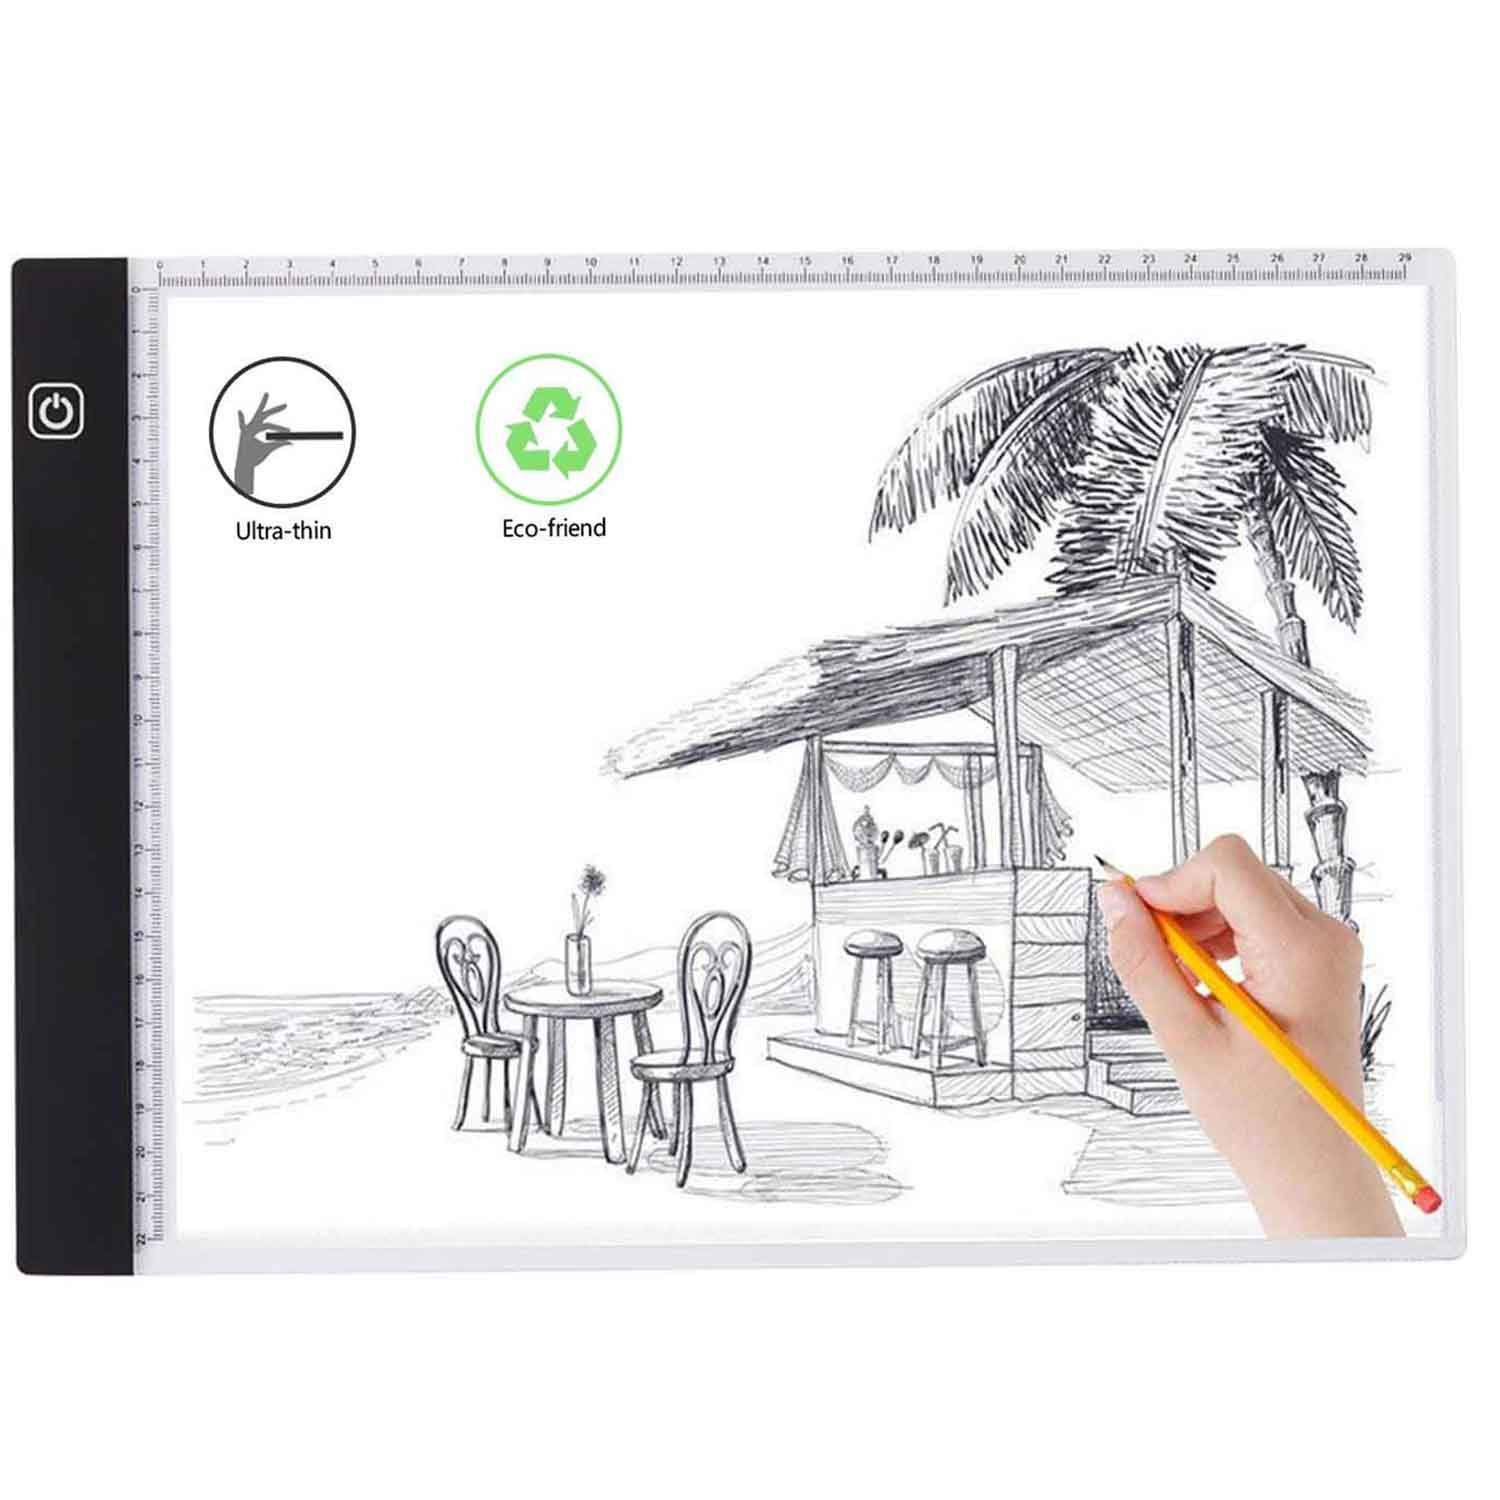 A4 Led Light Box Tracer Dimmable Brightness with Scale,Portable Light Box for Drawing,Sketching,Animation with USB Power Cable.